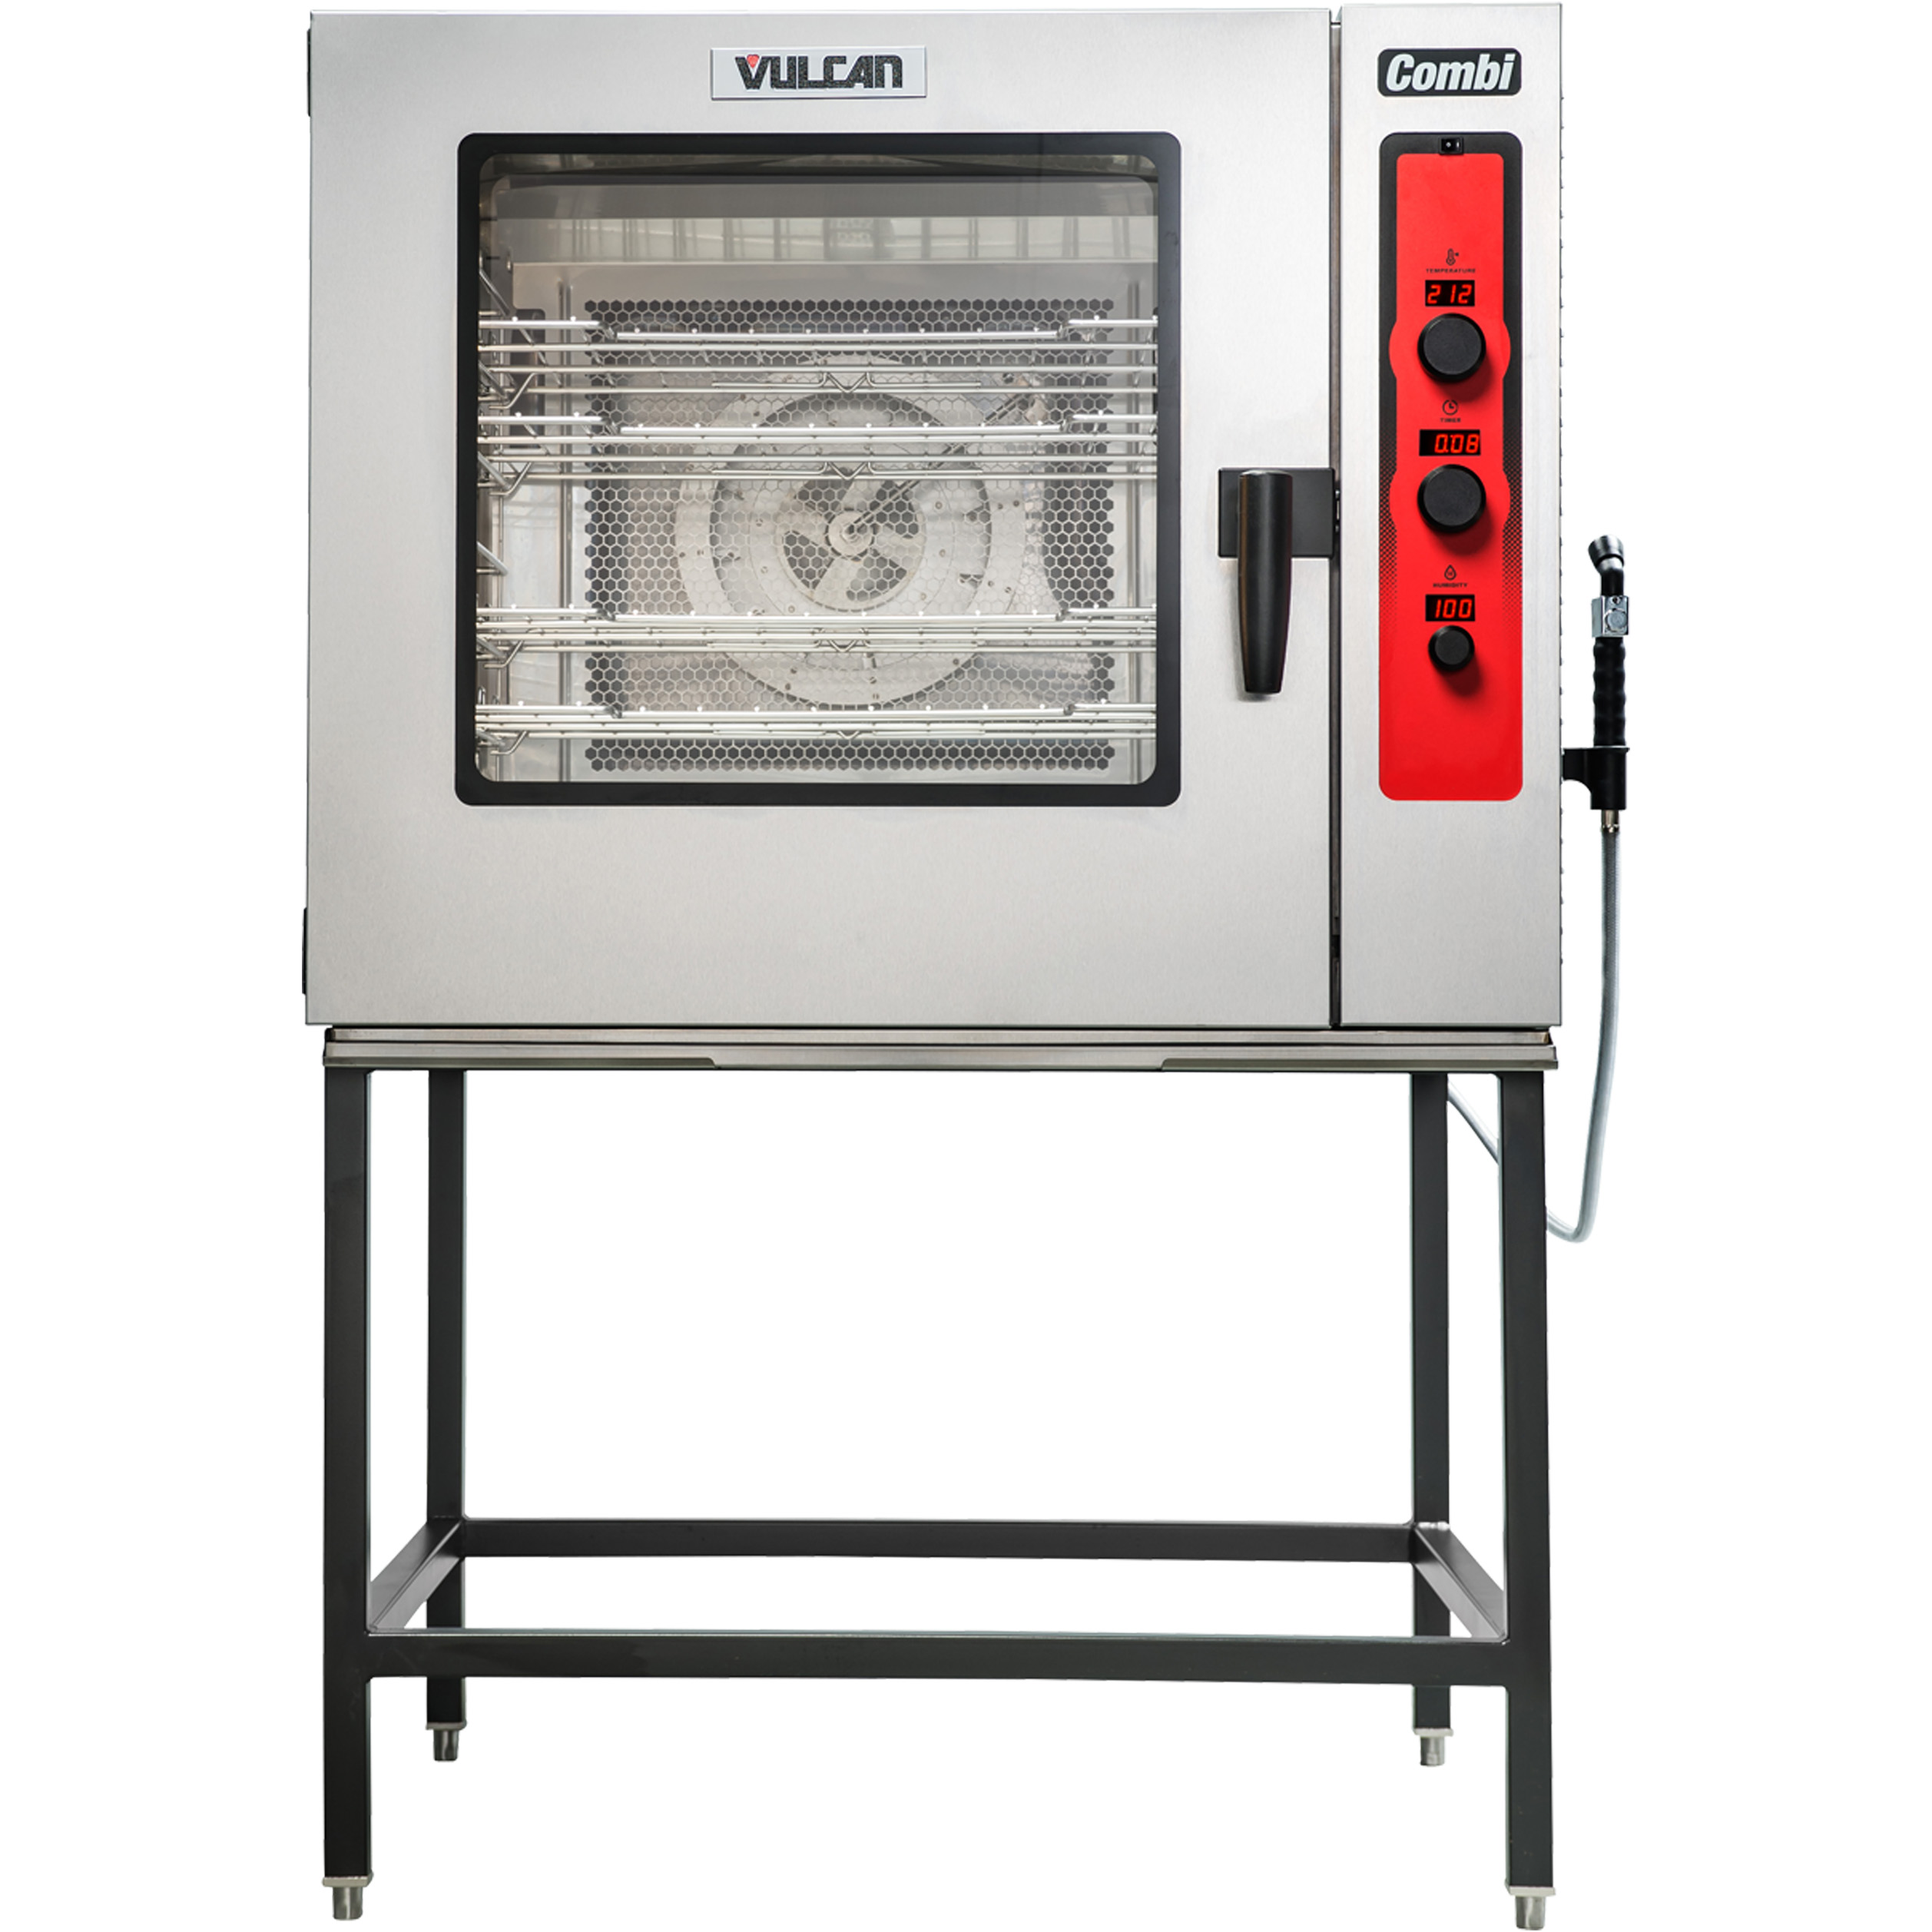 Vulcan ABC7E-208 combi oven, electric